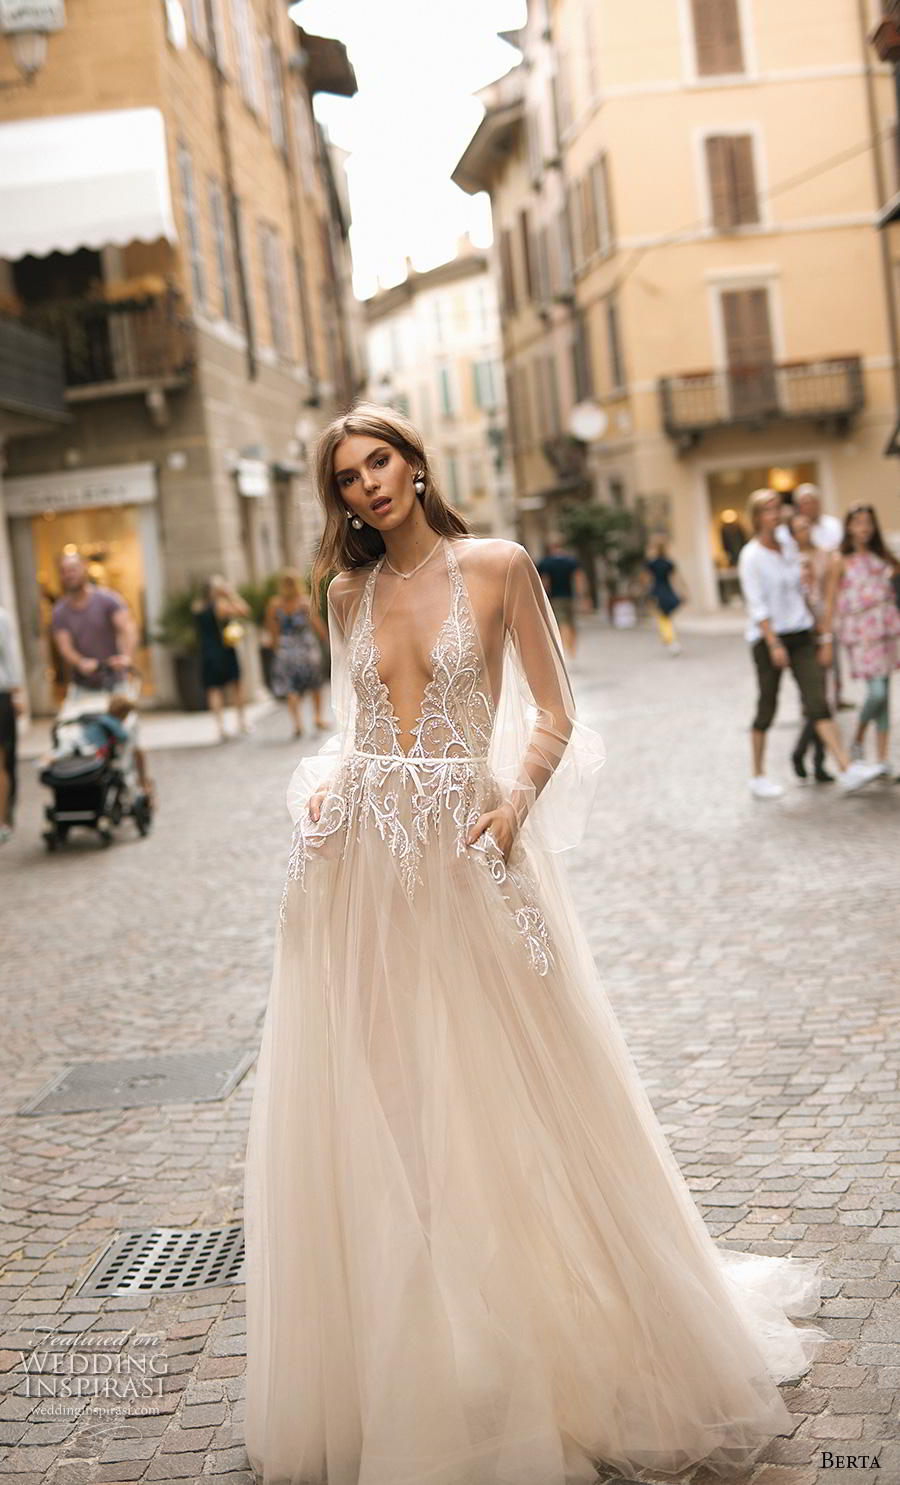 berta 2019 privee bridal sleeveless halter deep v neck heavily embellished bodice glitzy glamorous champagne a  line wedding dress pockets backless sweep train (6) mv